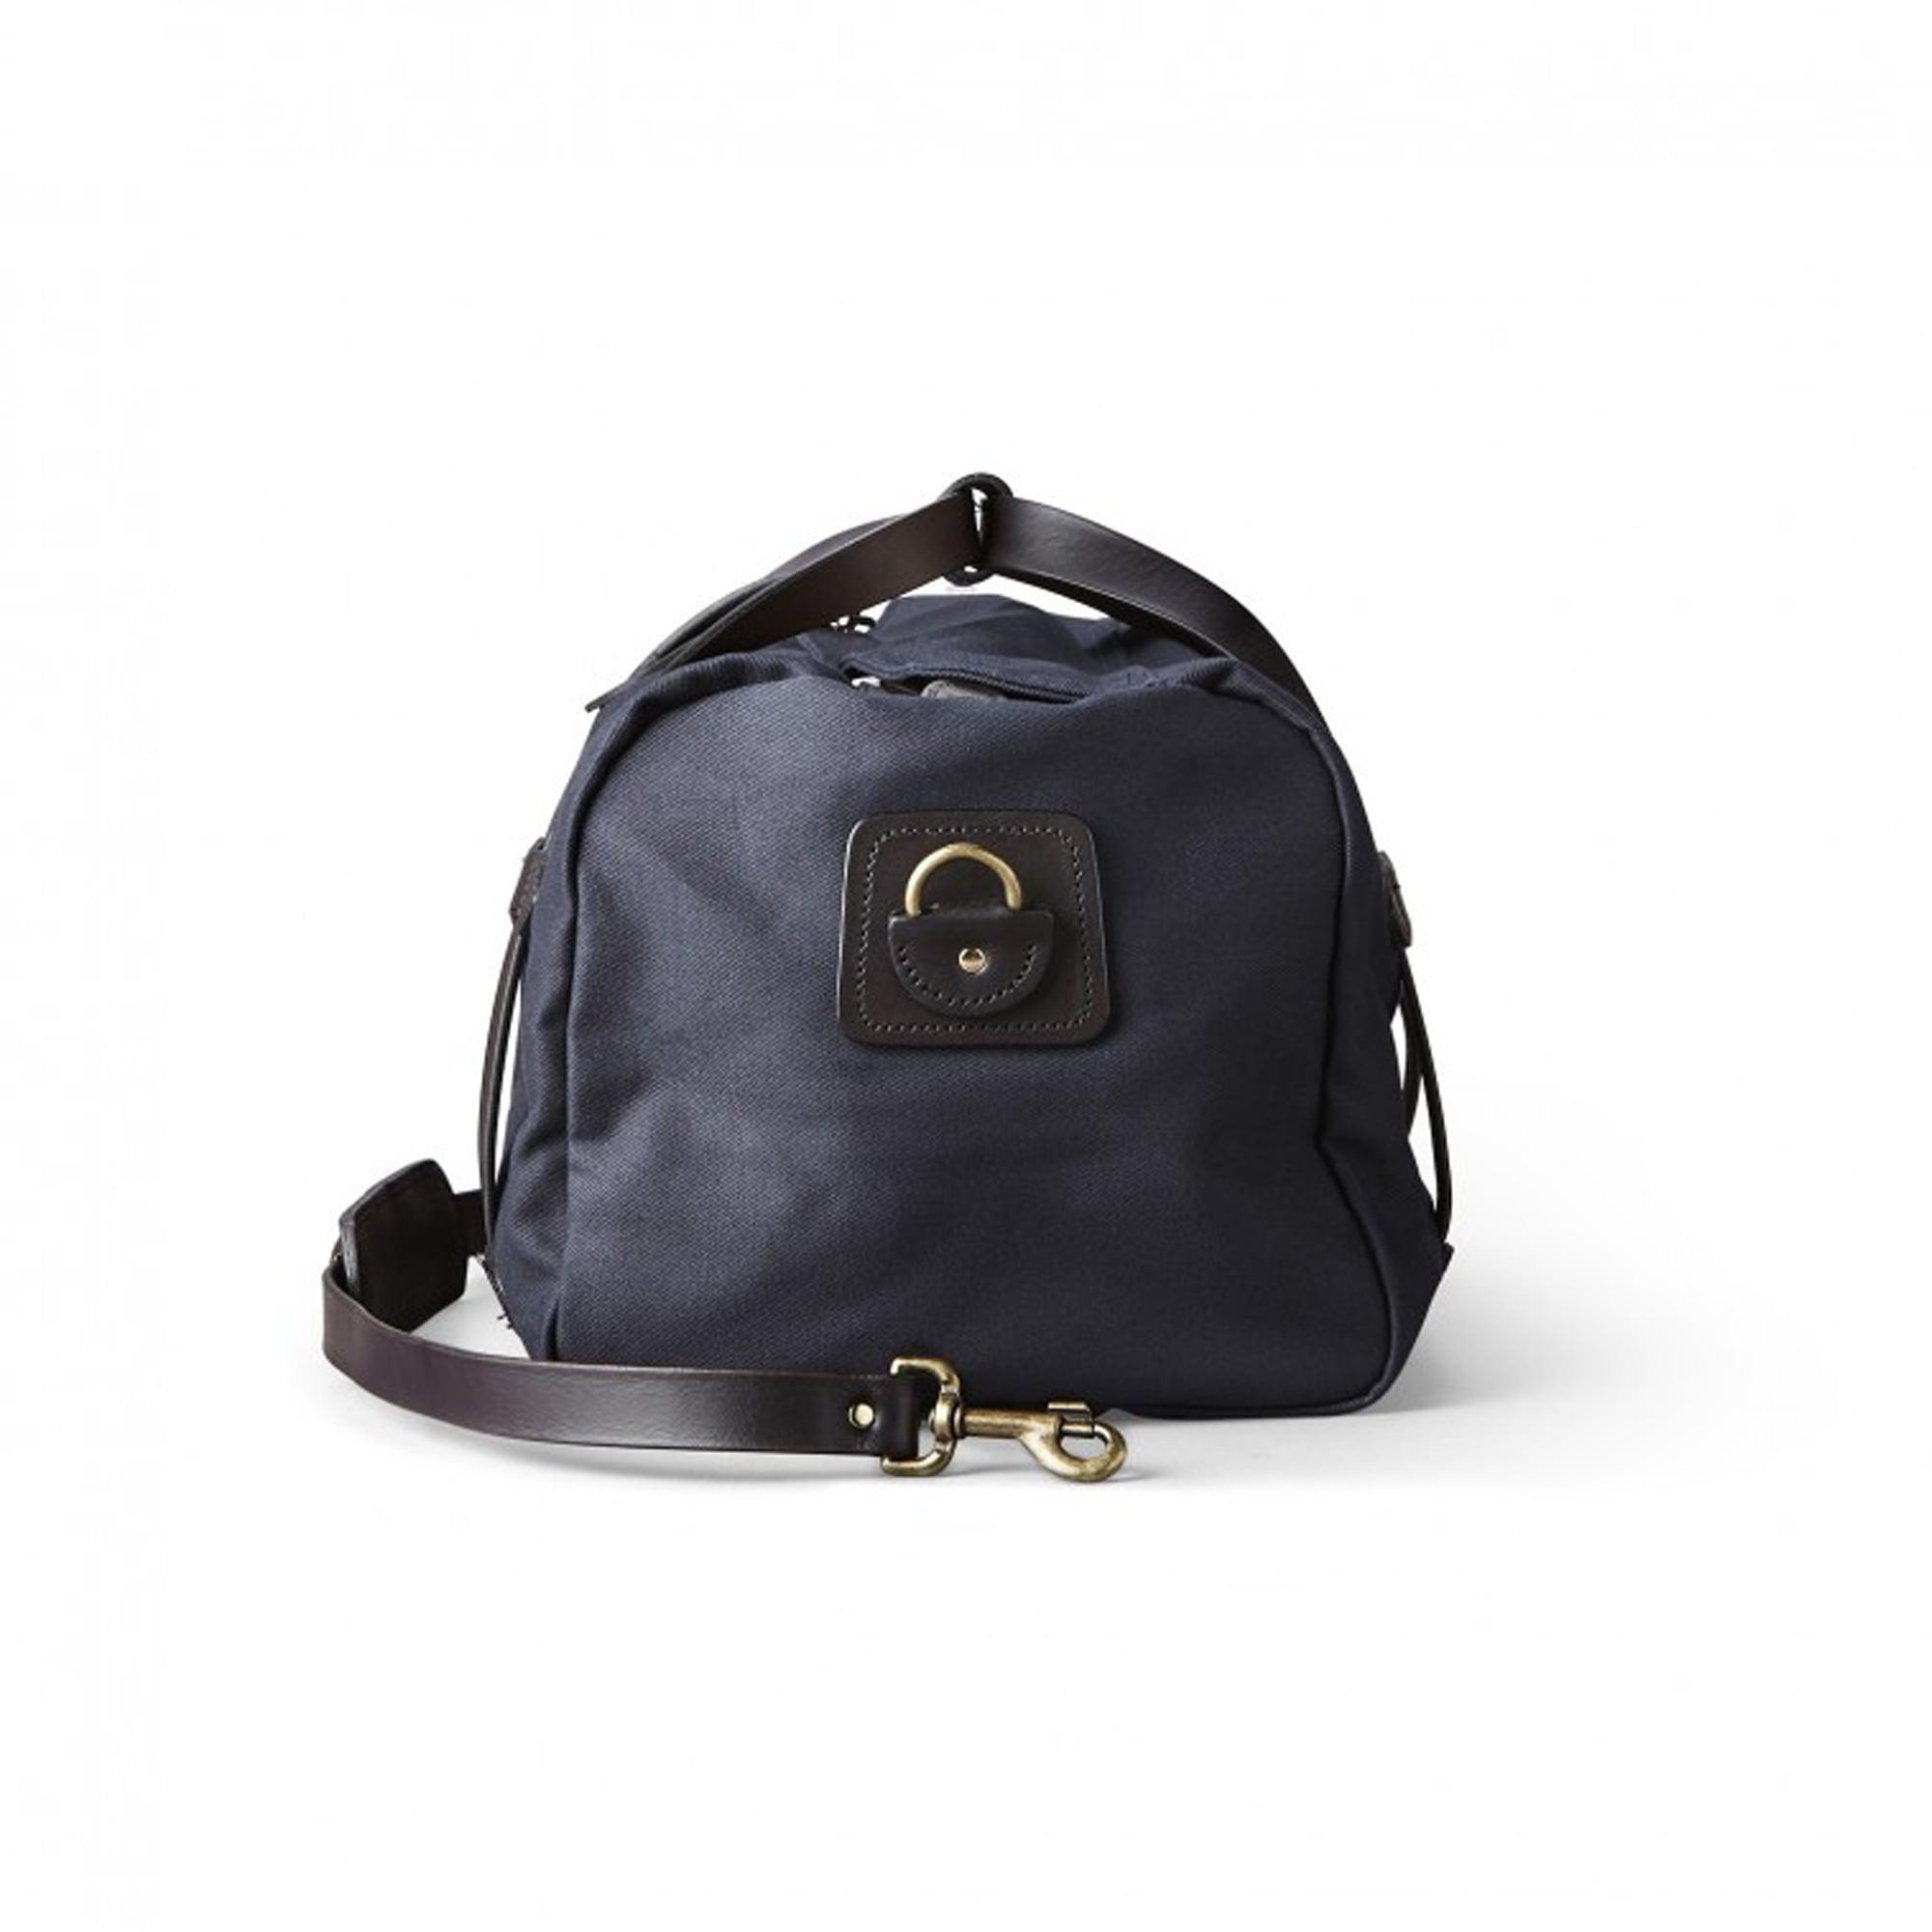 a31293955b3 Filson Small Navy Duffle Bag 11070220 in Blue for Men - Lyst